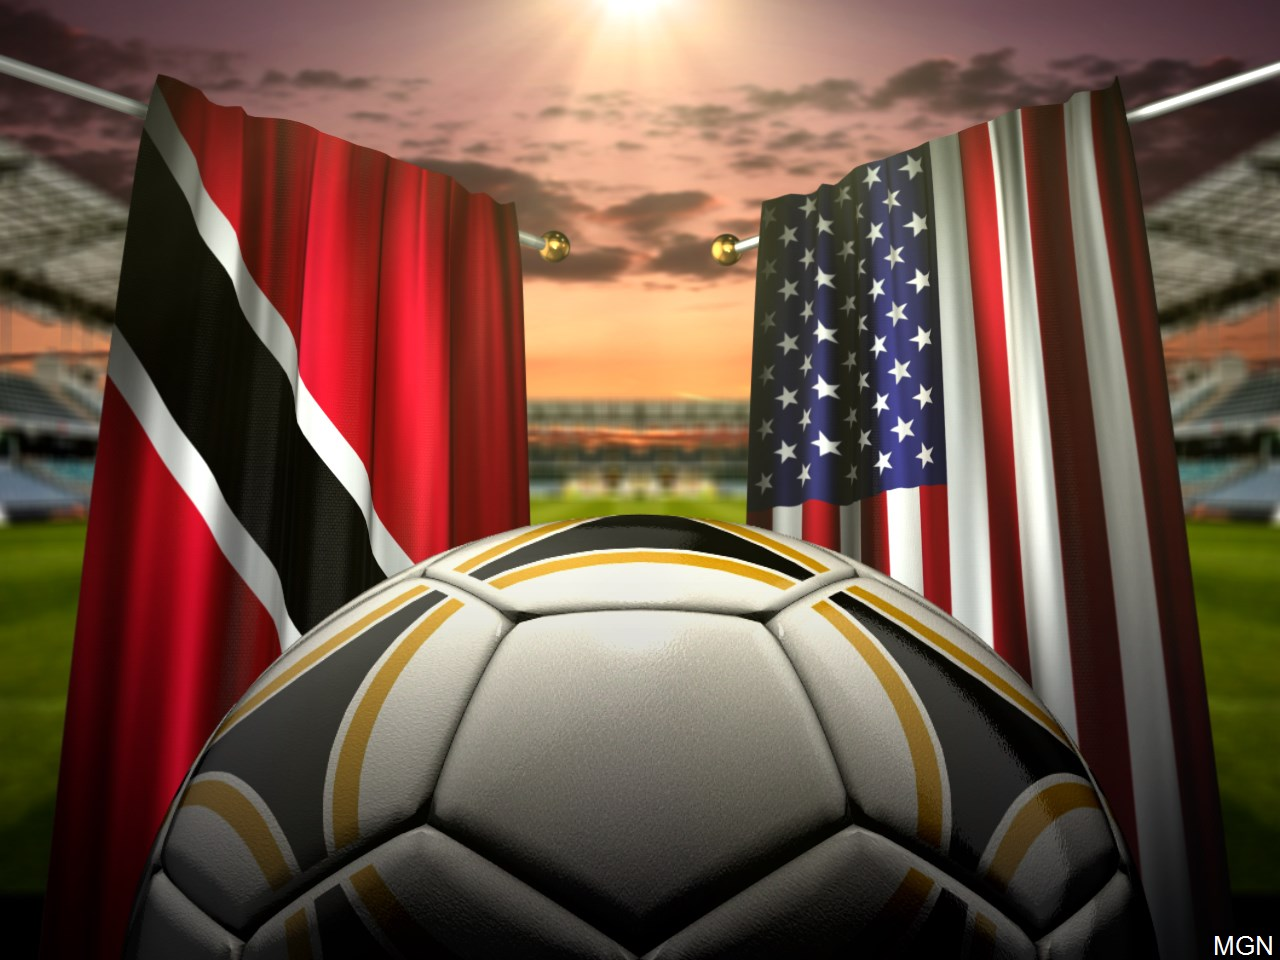 United States misses first World Cup since 1986 (Photo: MGN)